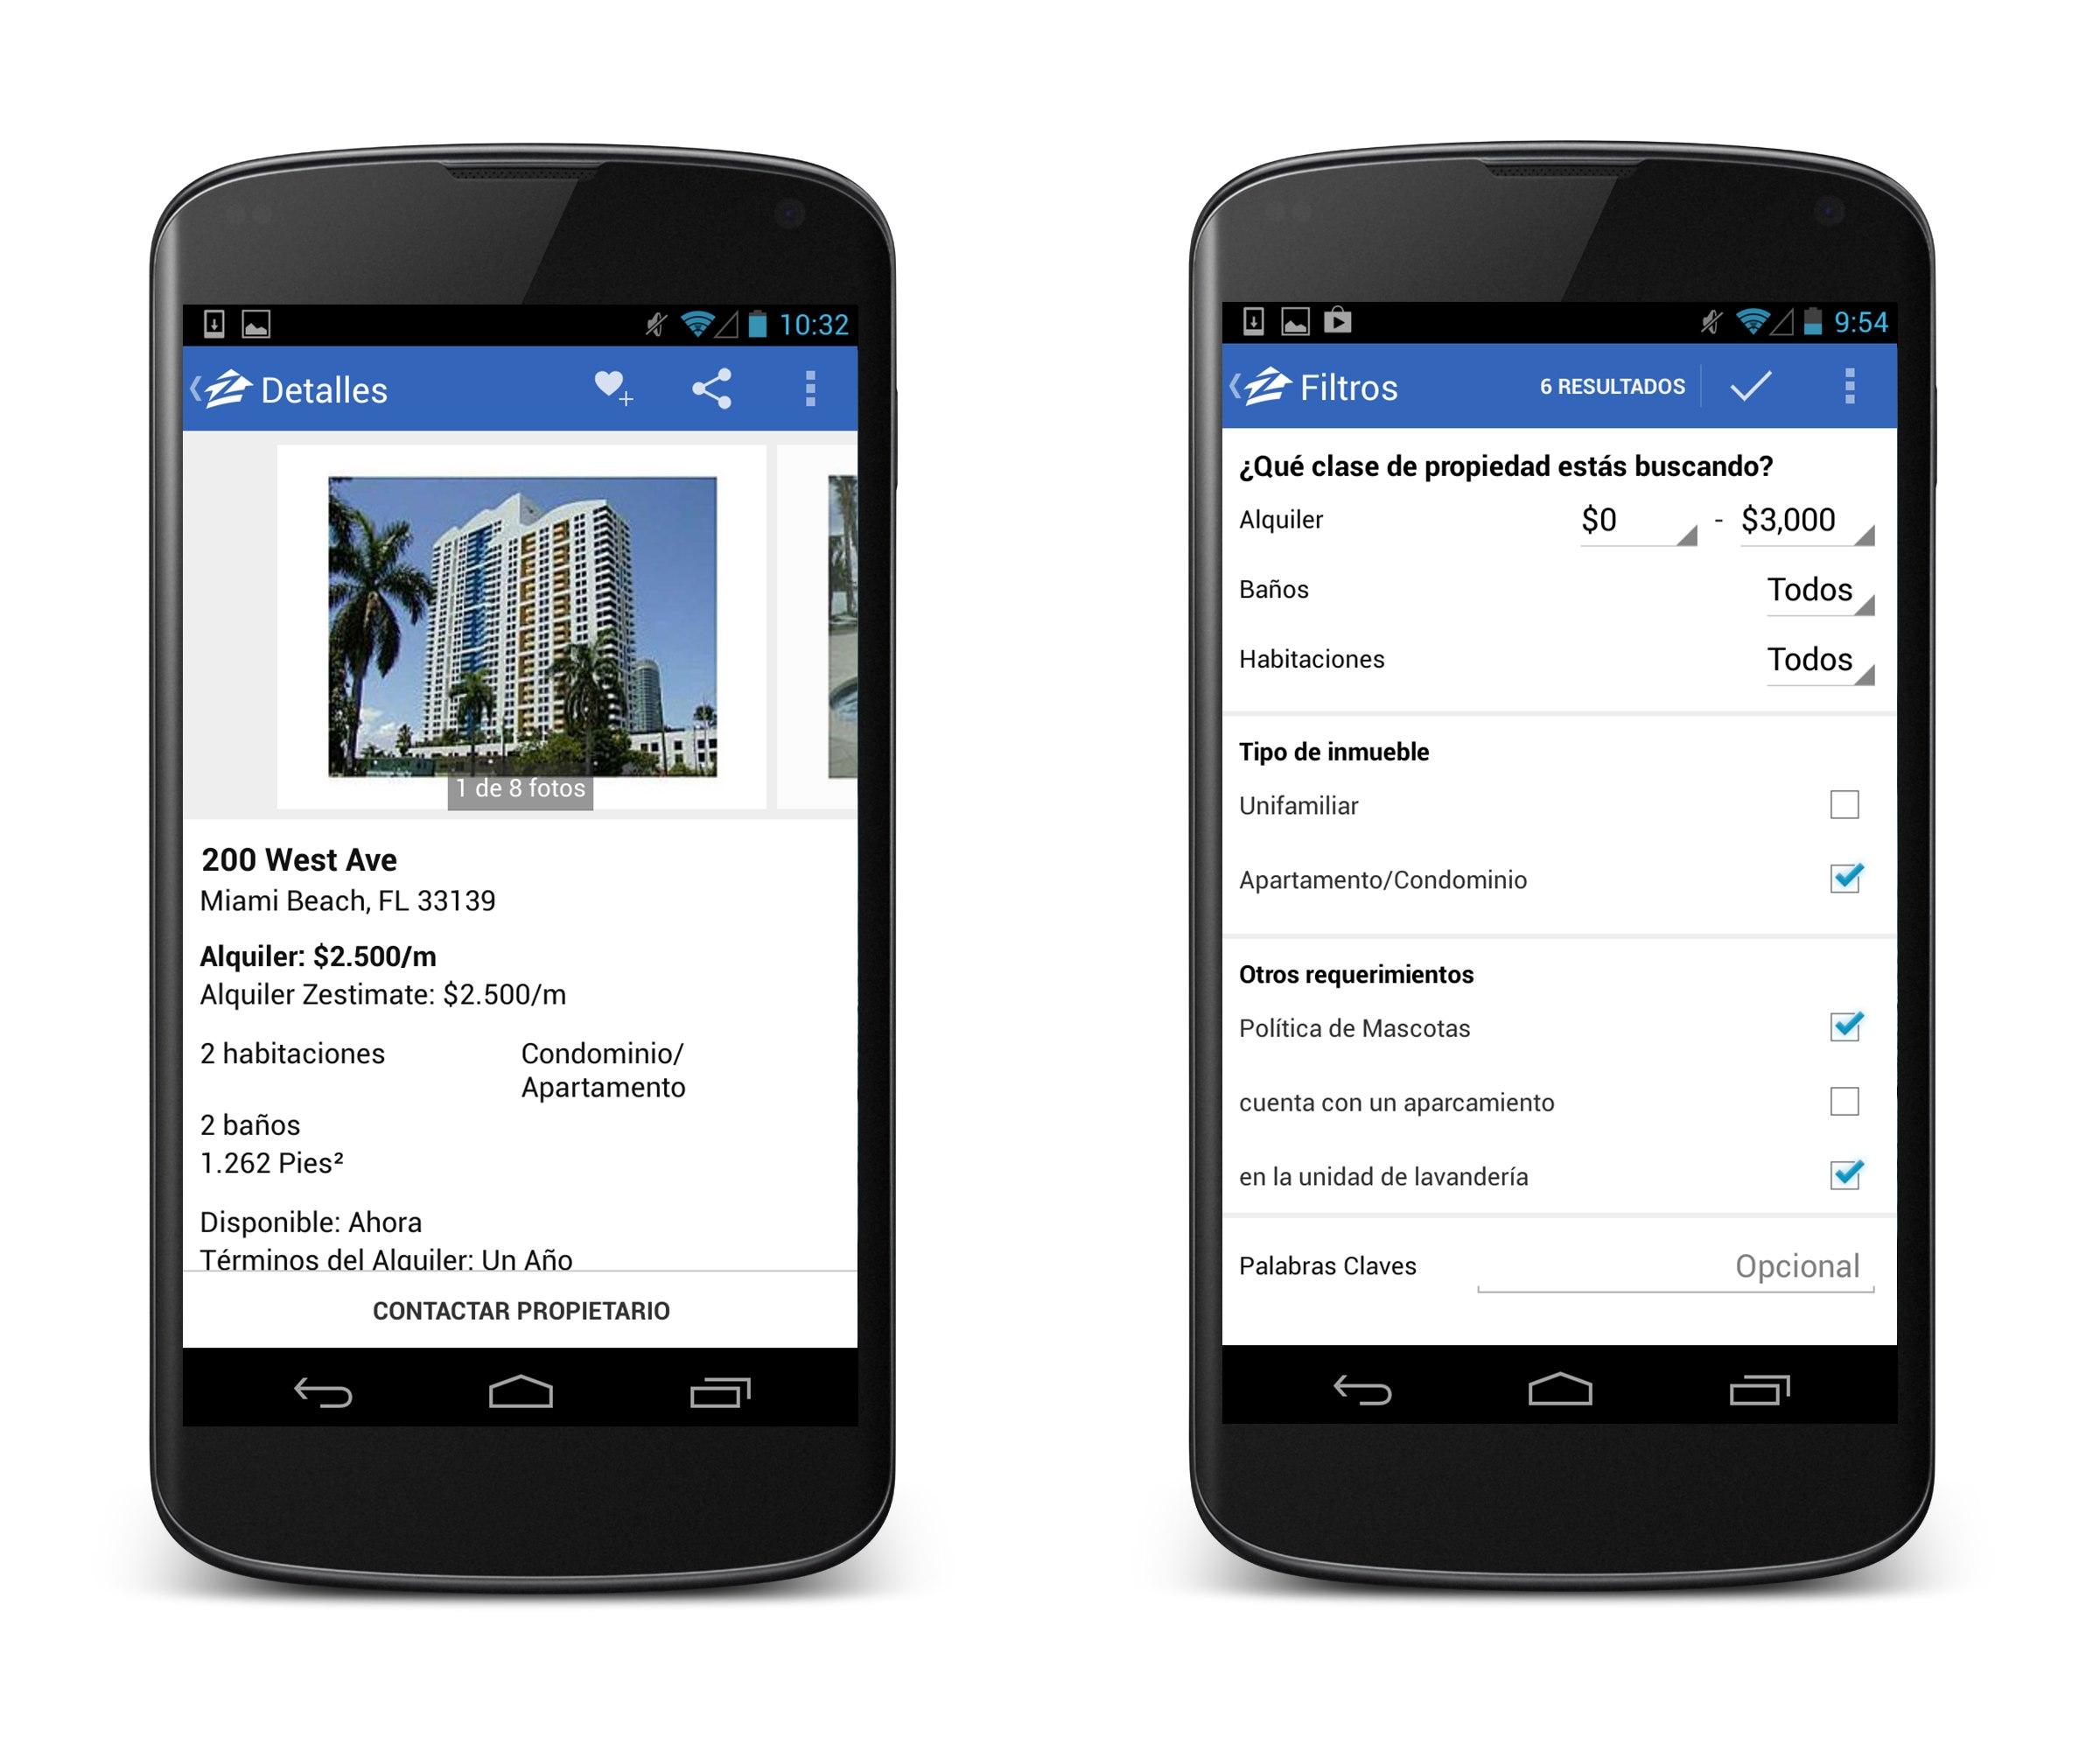 Zillow Rentals For Android Now Features Google's 3D Maps And